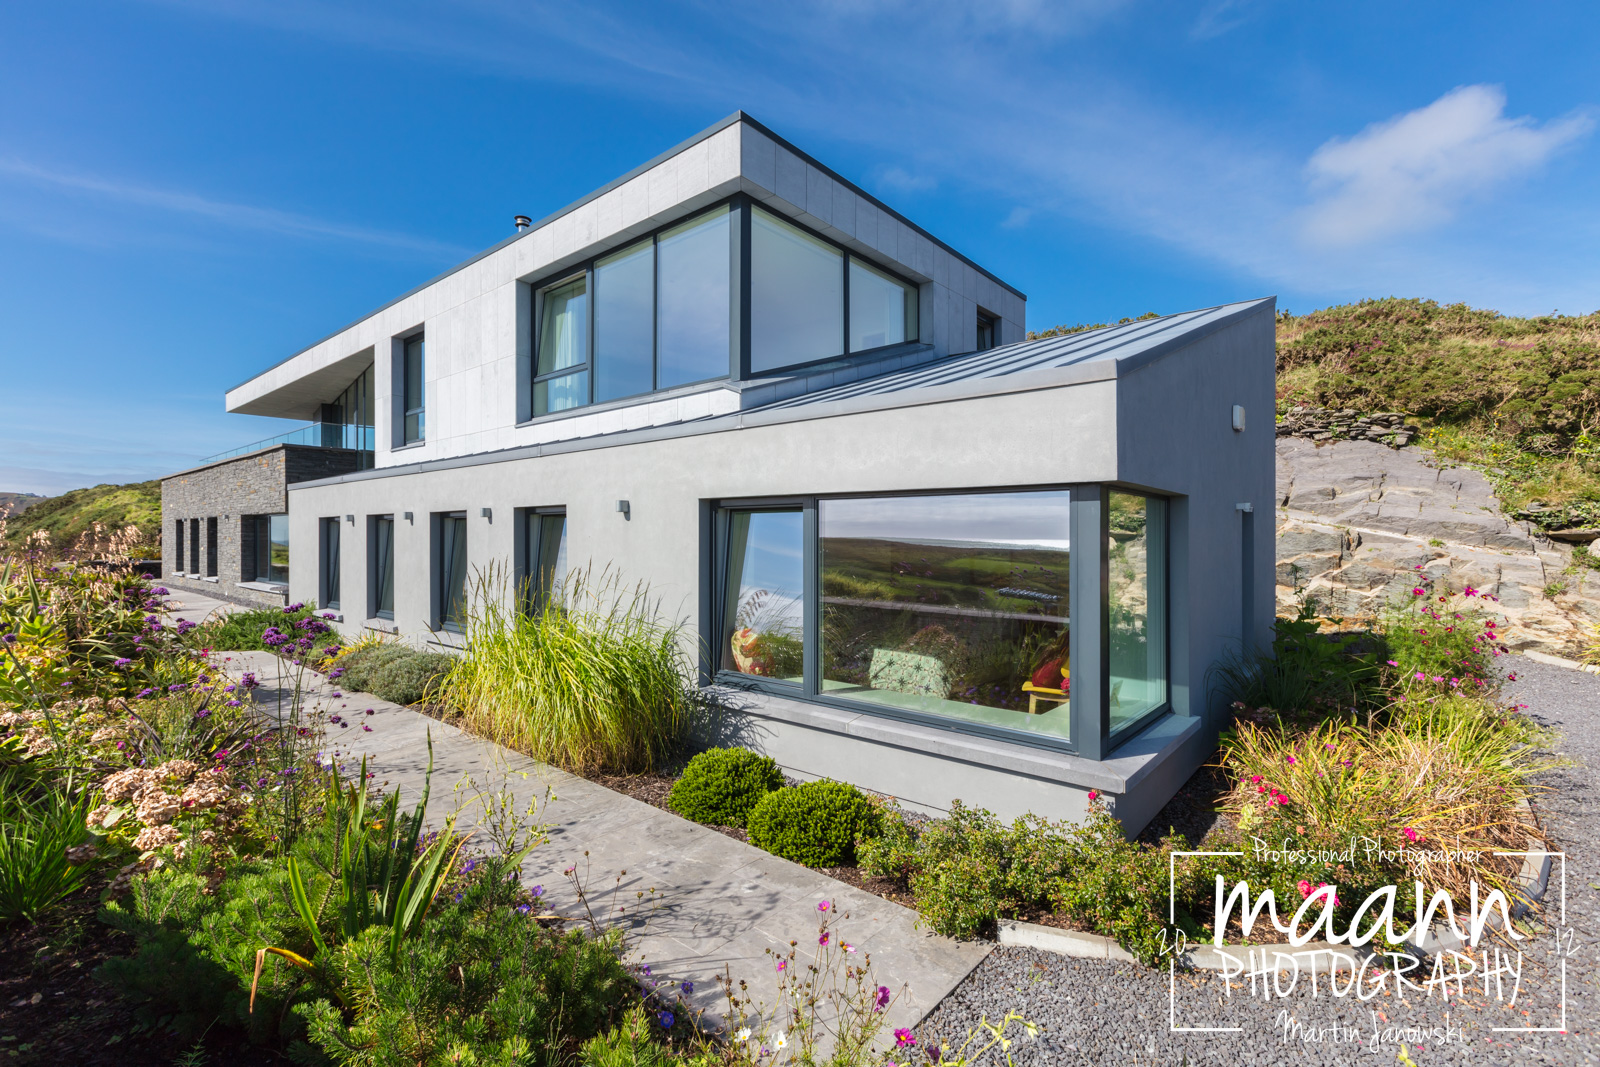 Home of the year – Season 4, Episode 4 | Architectural Photography